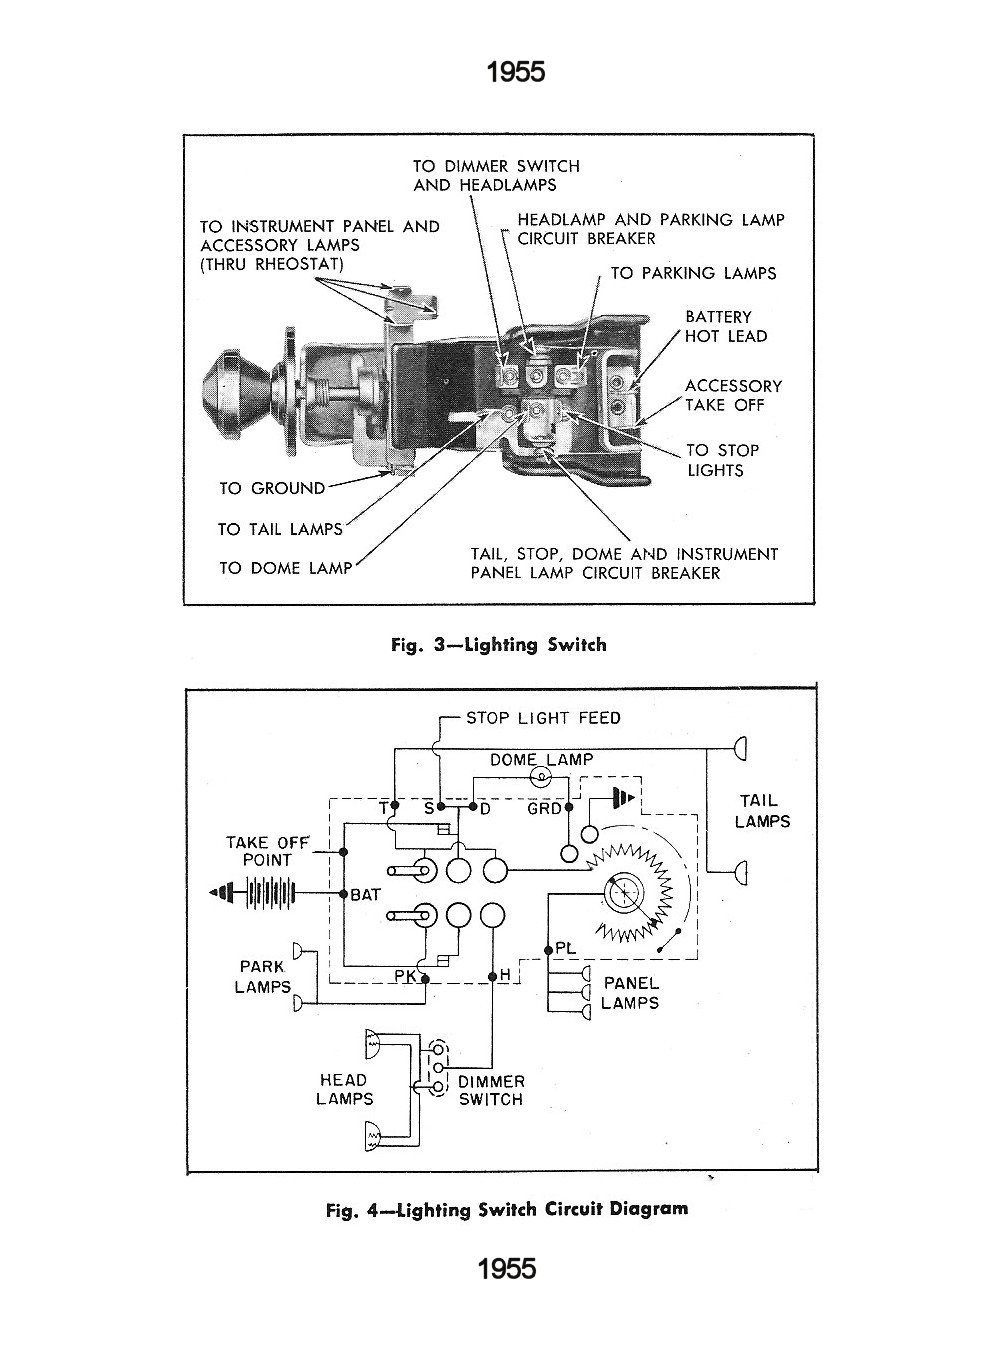 55csm1204a chevy wiring diagrams 1957 chevy headlight switch wiring diagram at soozxer.org